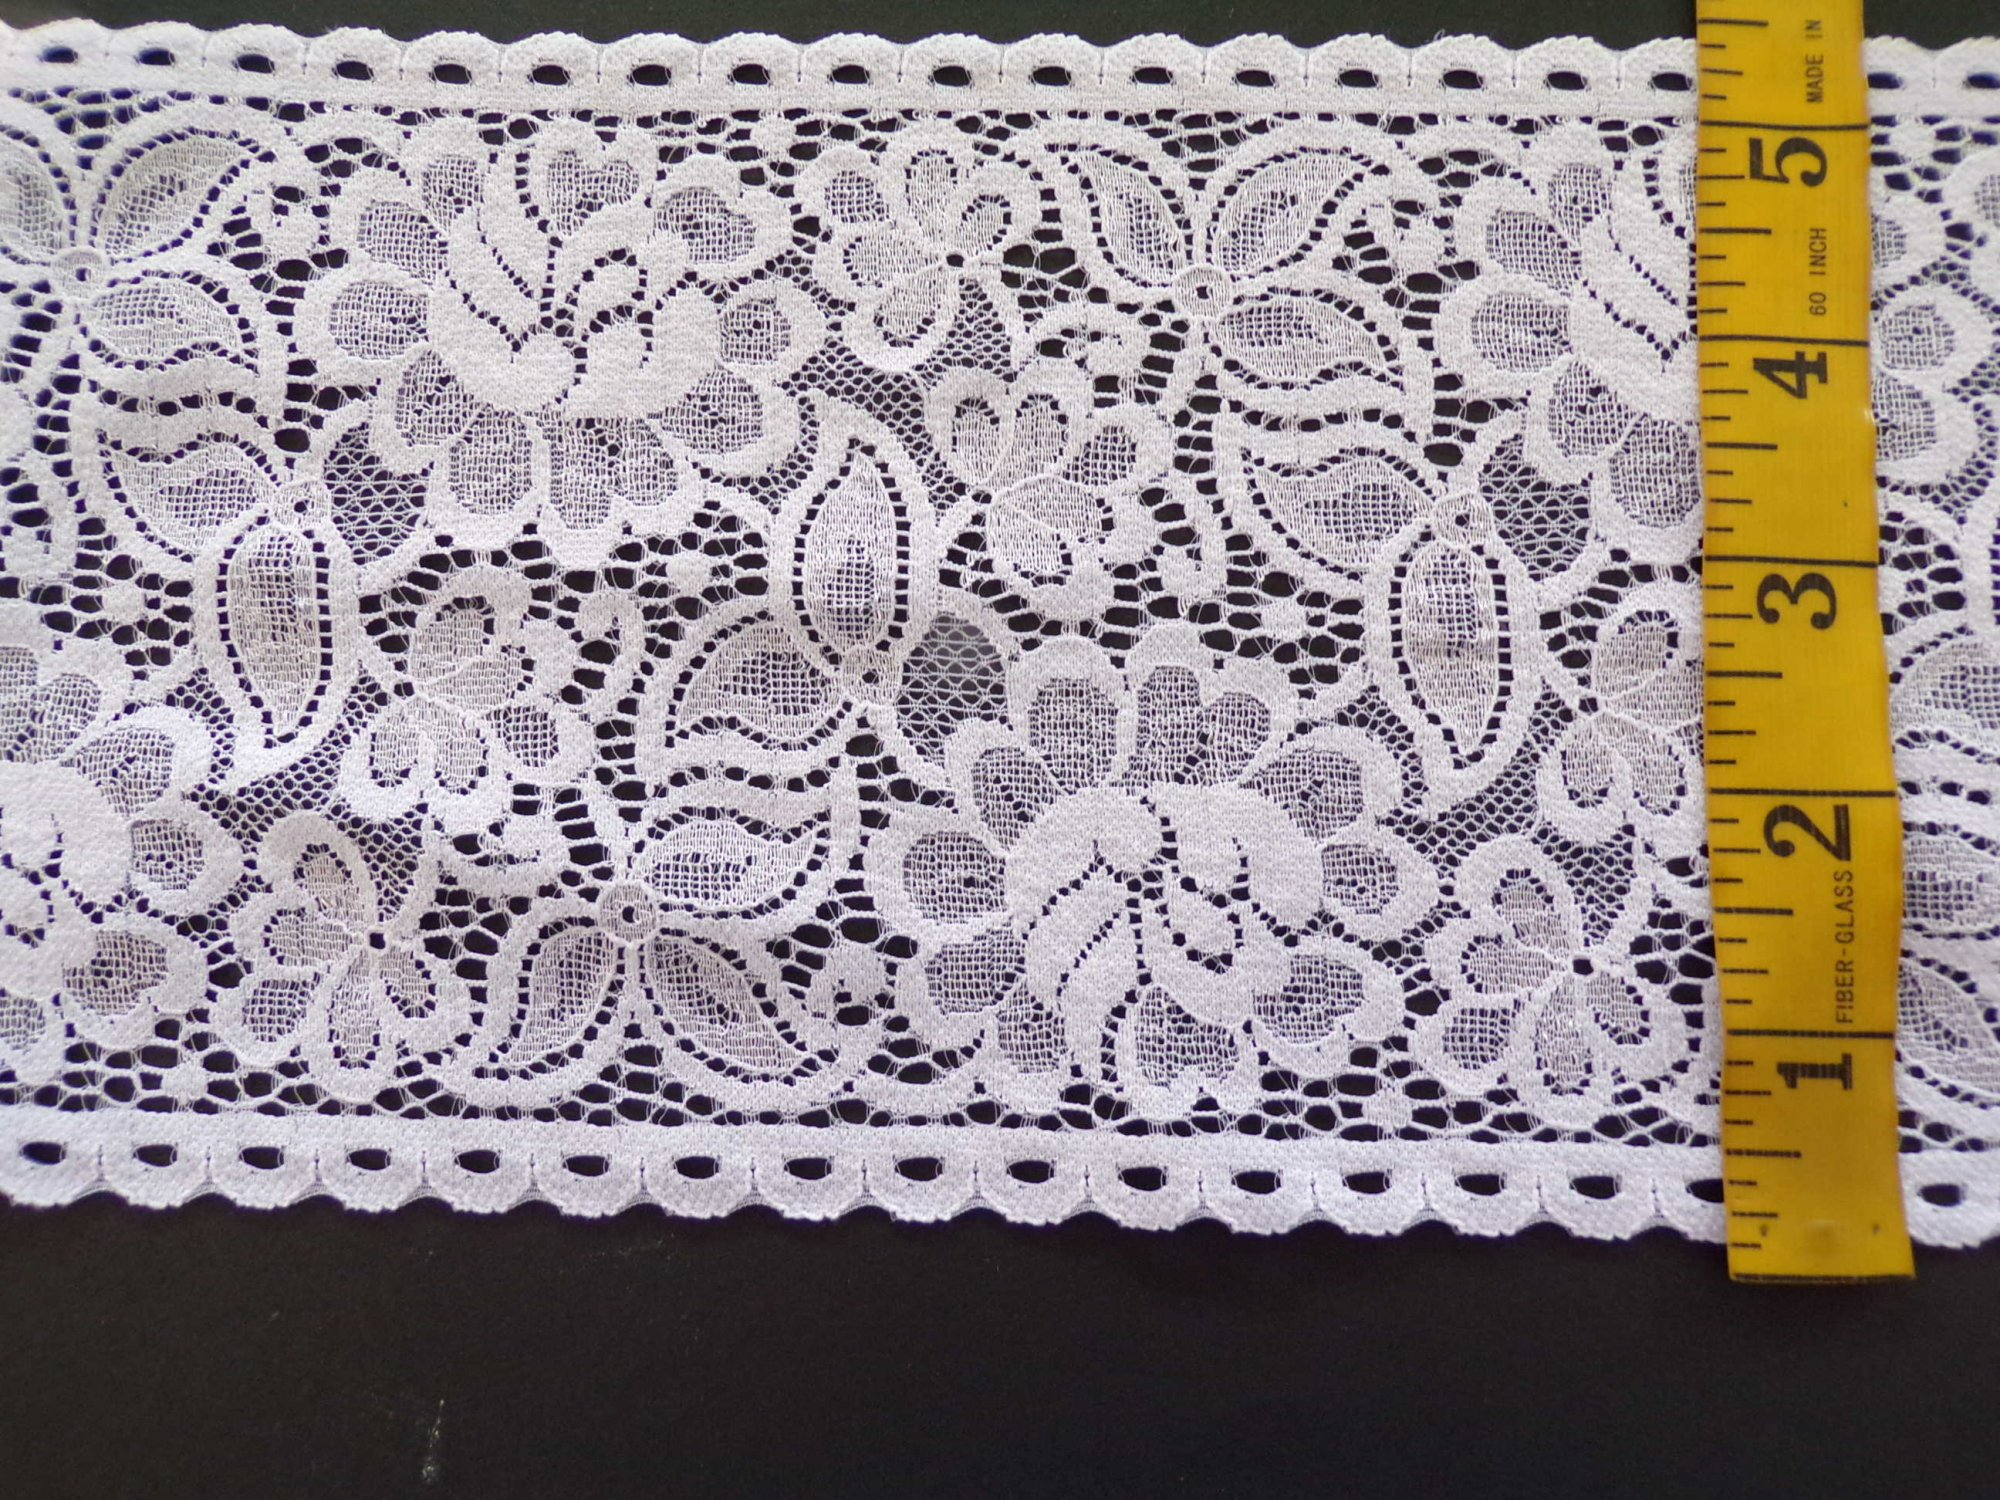 5.5 White Rigid Lace - 9148